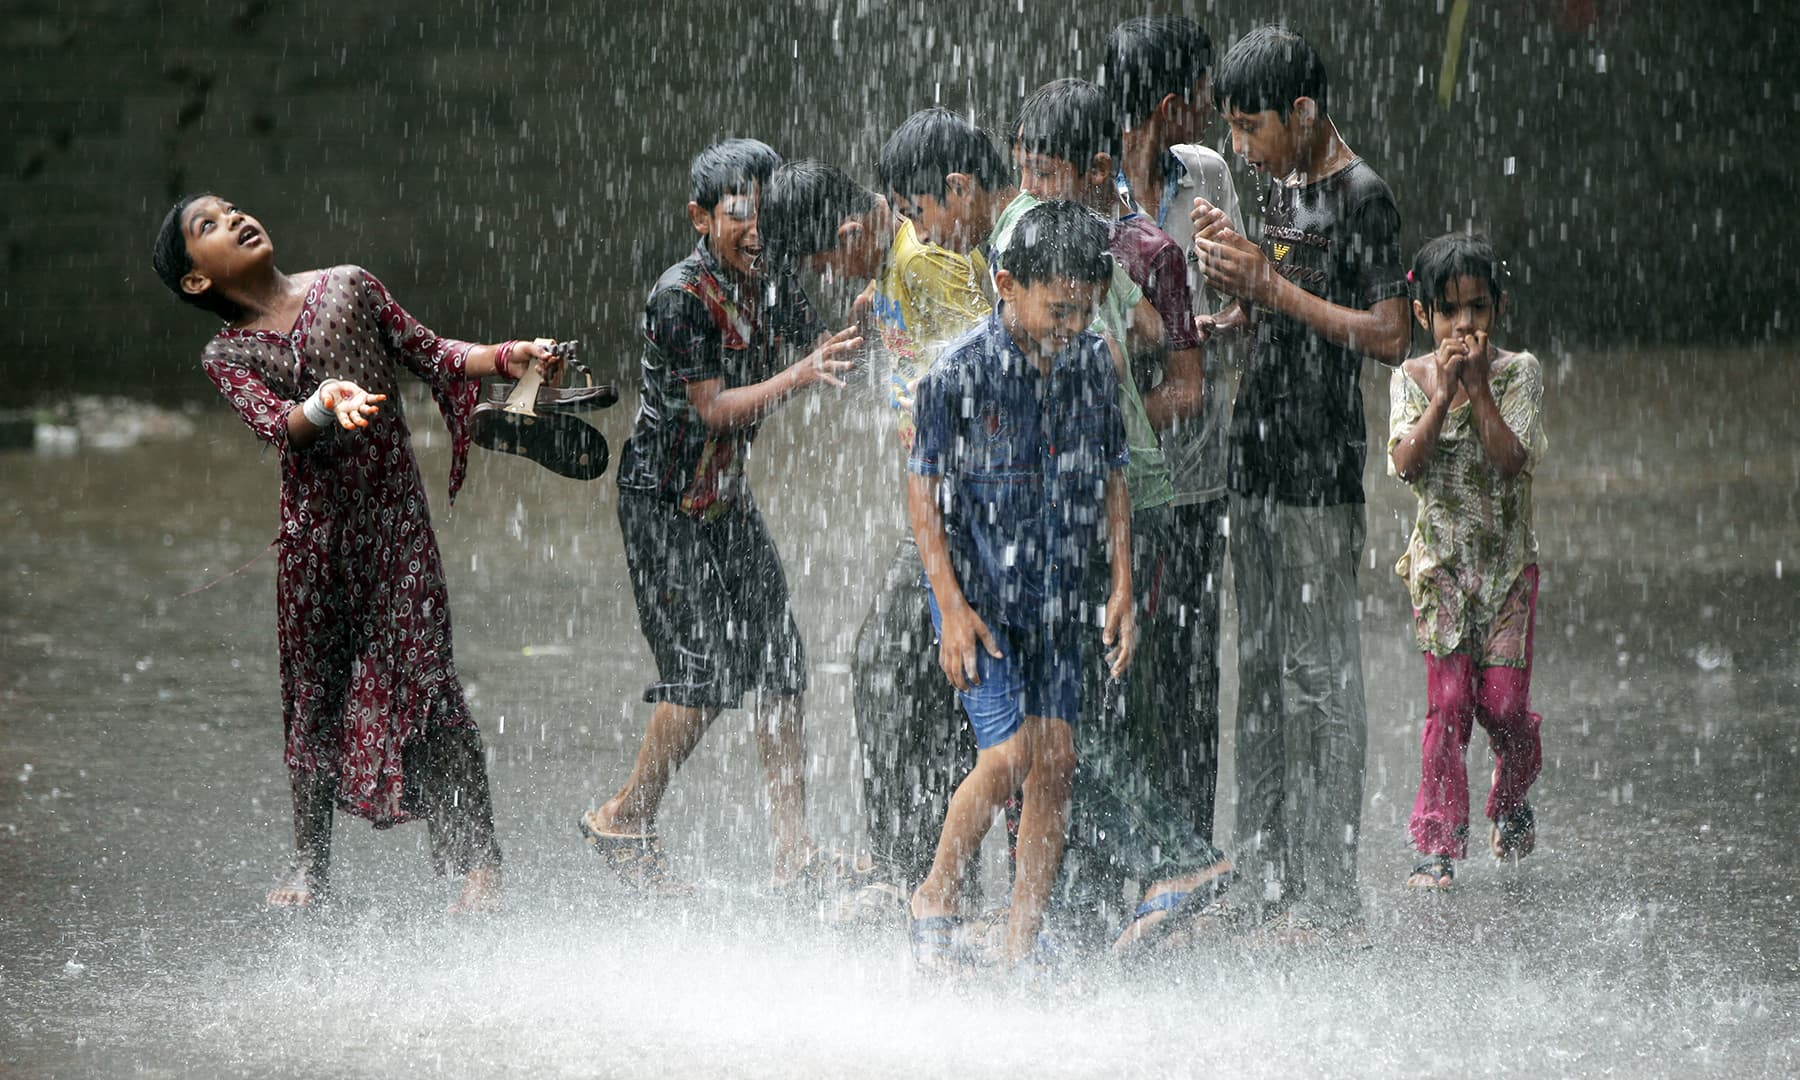 Children play in the rain in Lahore. — Reuters